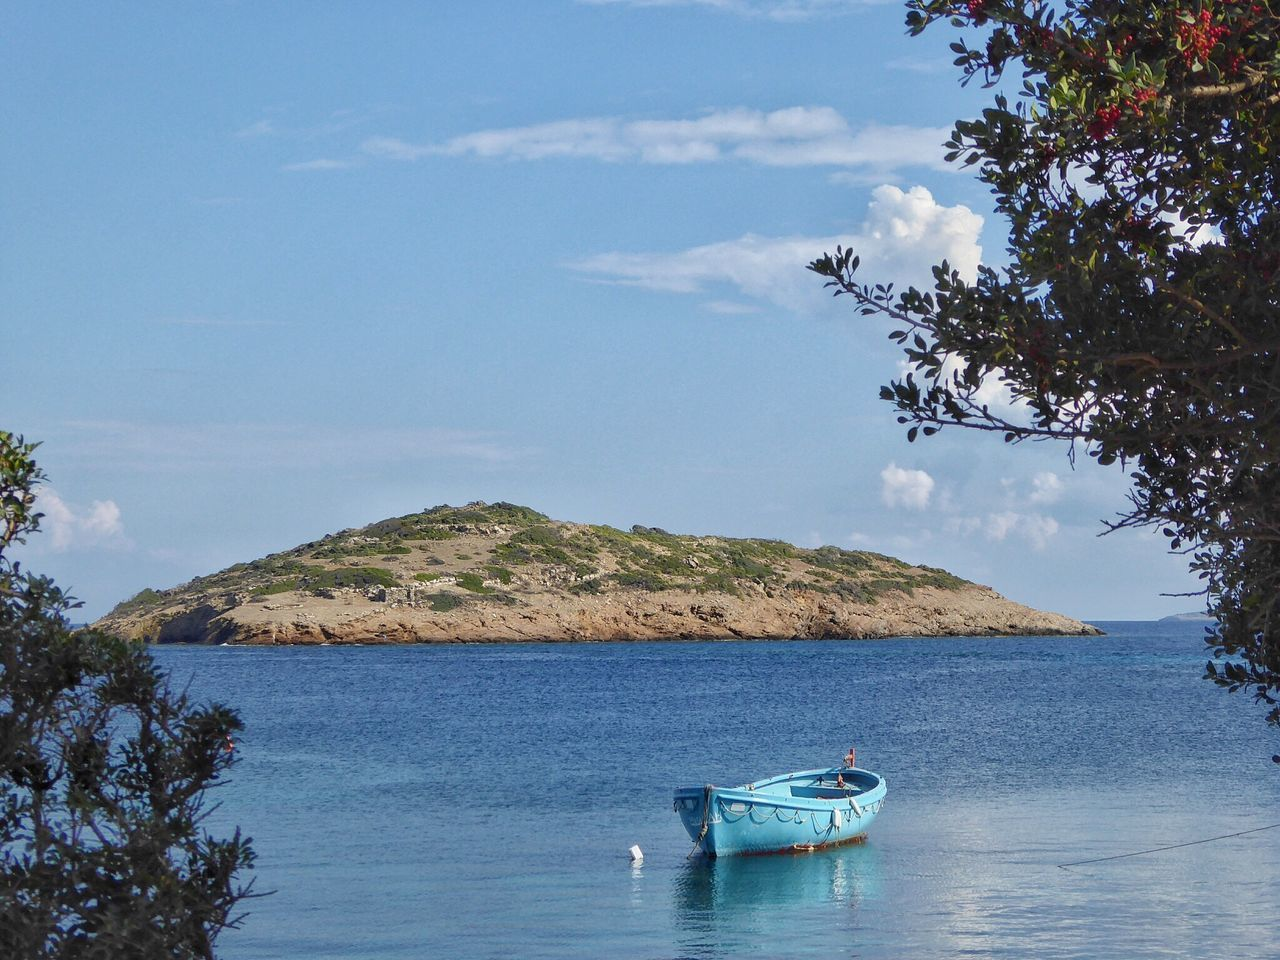 Marathi Dodecanese Greece GREECE ♥♥ Island Islandlife Island Life Island View  Seascape Seascape Photography Seascapes SeaScapePhotography Seascape #naturelover Landscape Landscape_Collection Landscape_photography